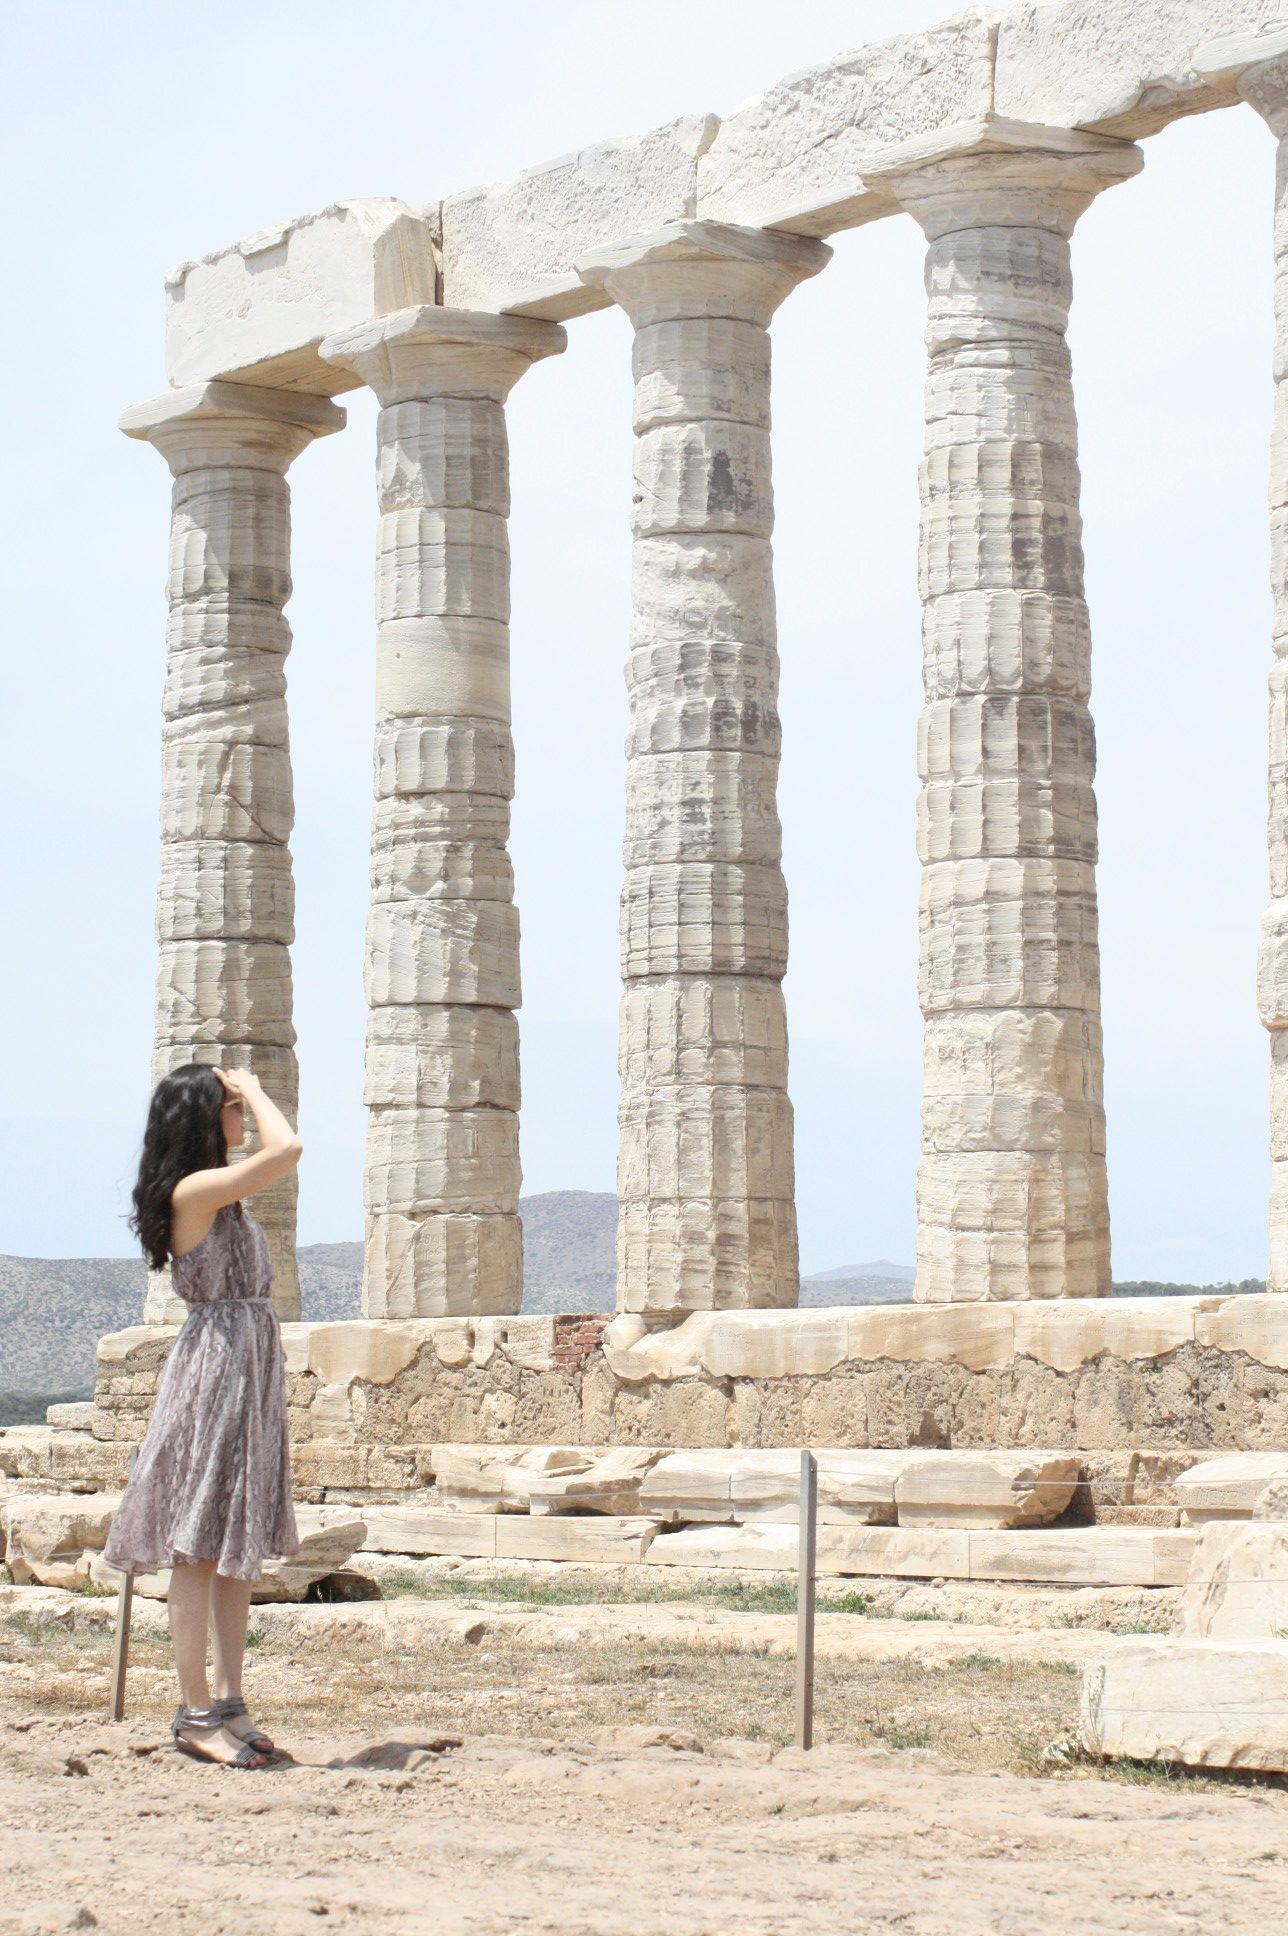 NoMad Luxuries Snakeskin Dress in Sounion, Greece